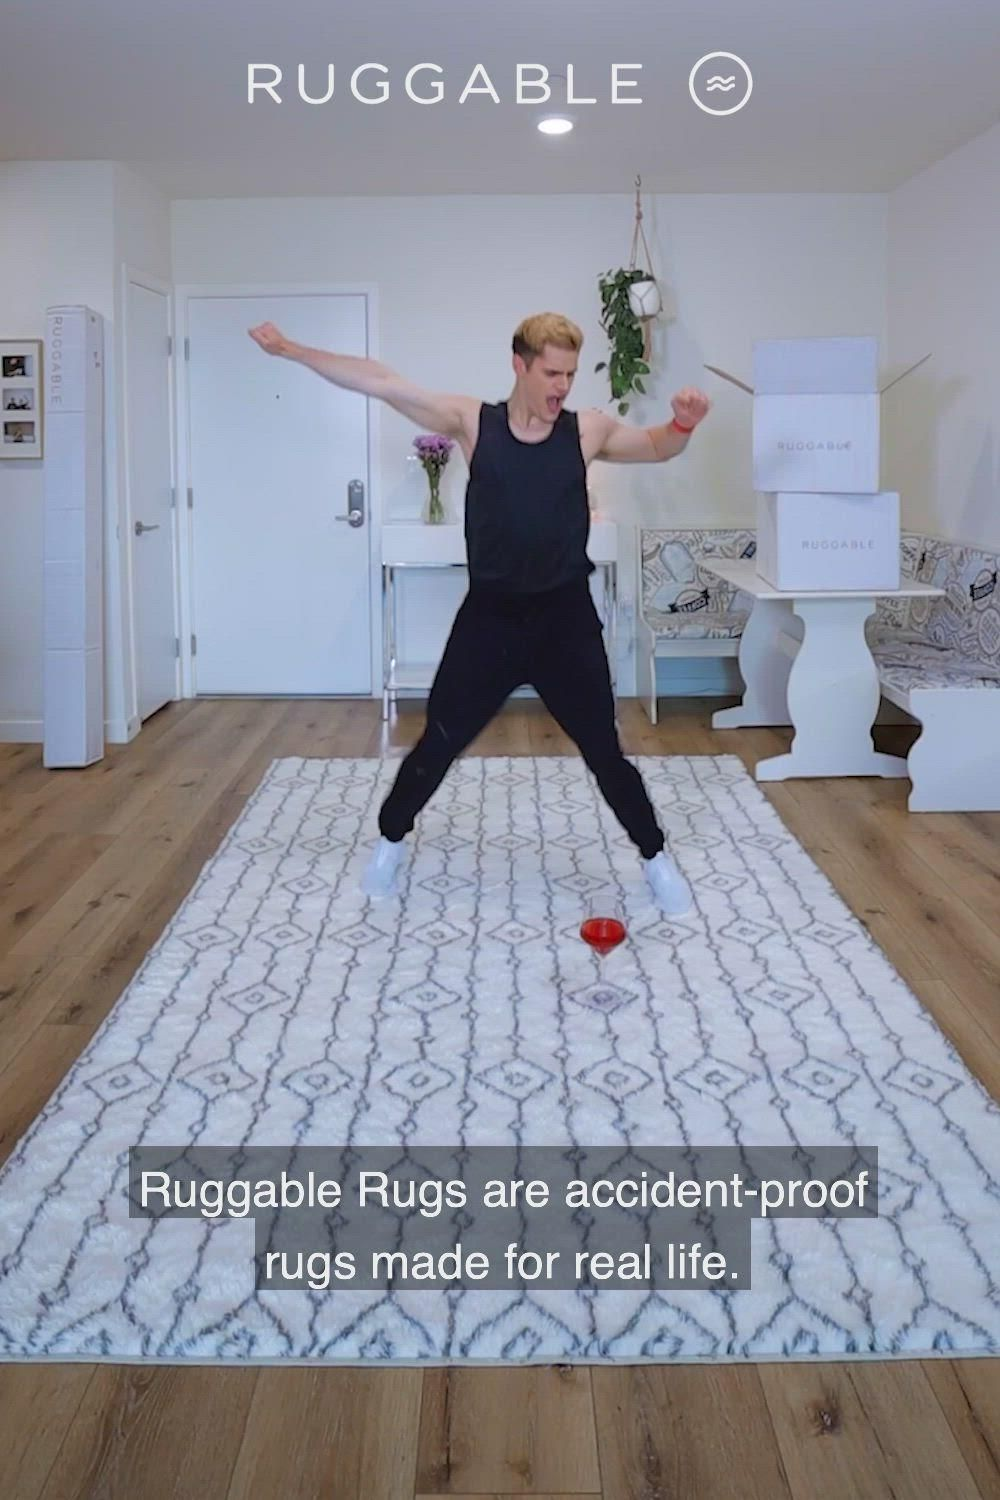 Finally, A Rug You Can Spill On